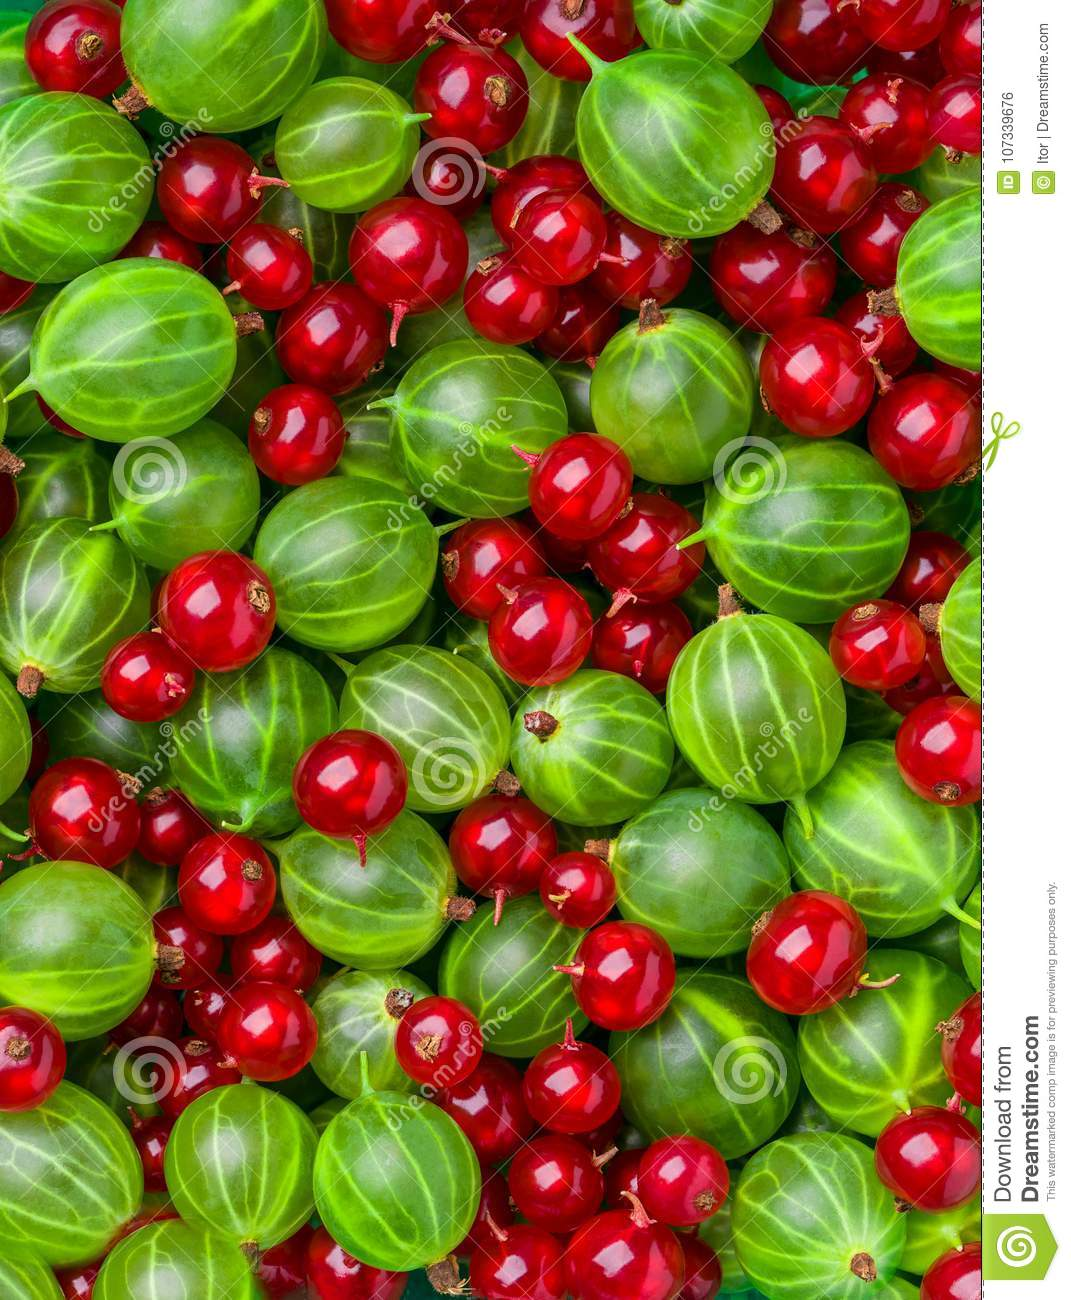 Background of different berries and fruits.